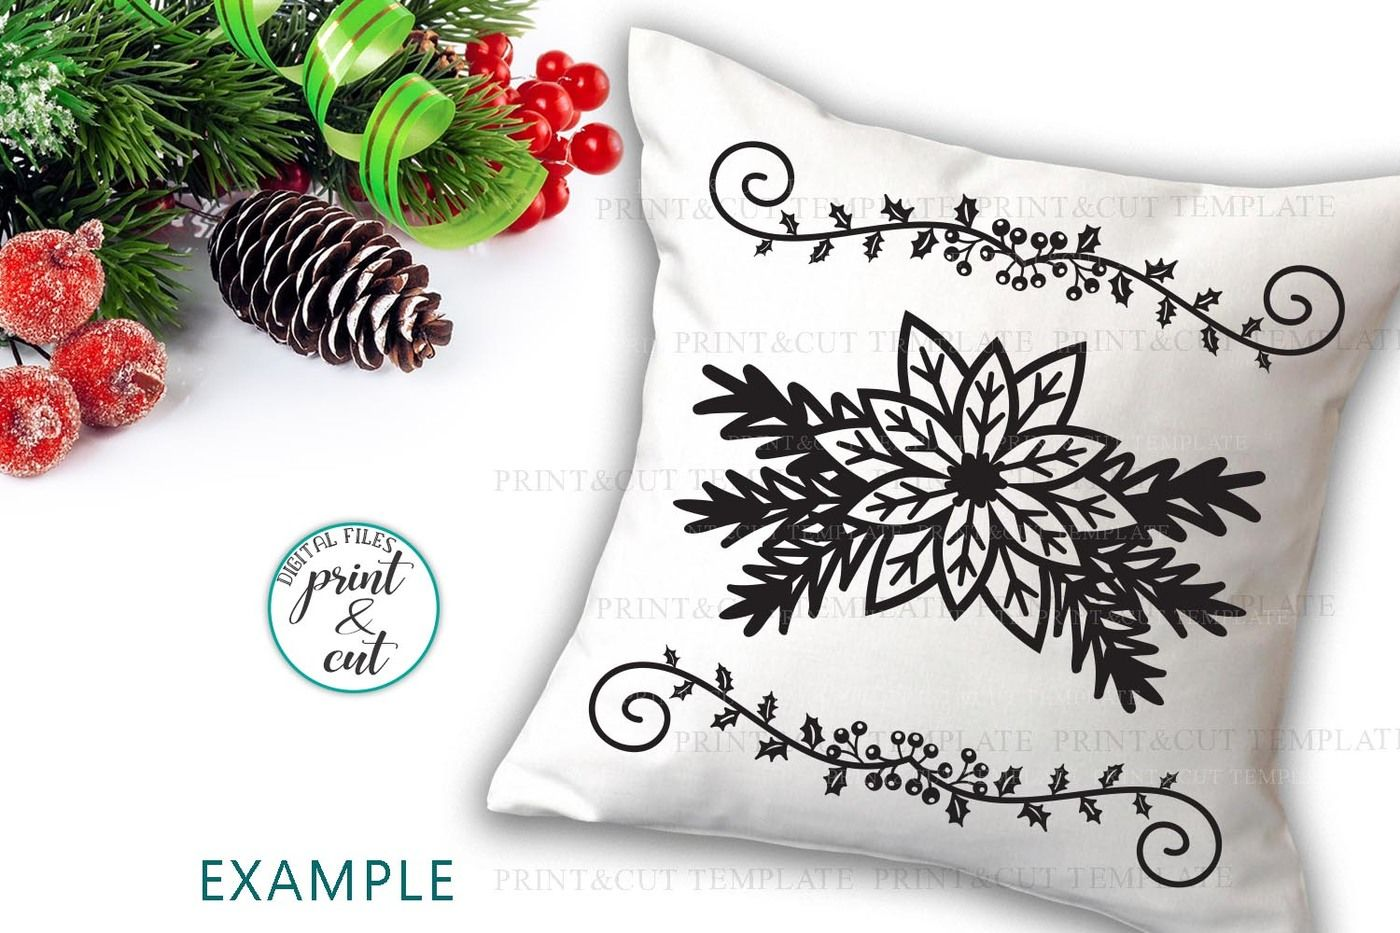 Poinsettia Christmas Border Swirls Decorations Paper Cut Svg By